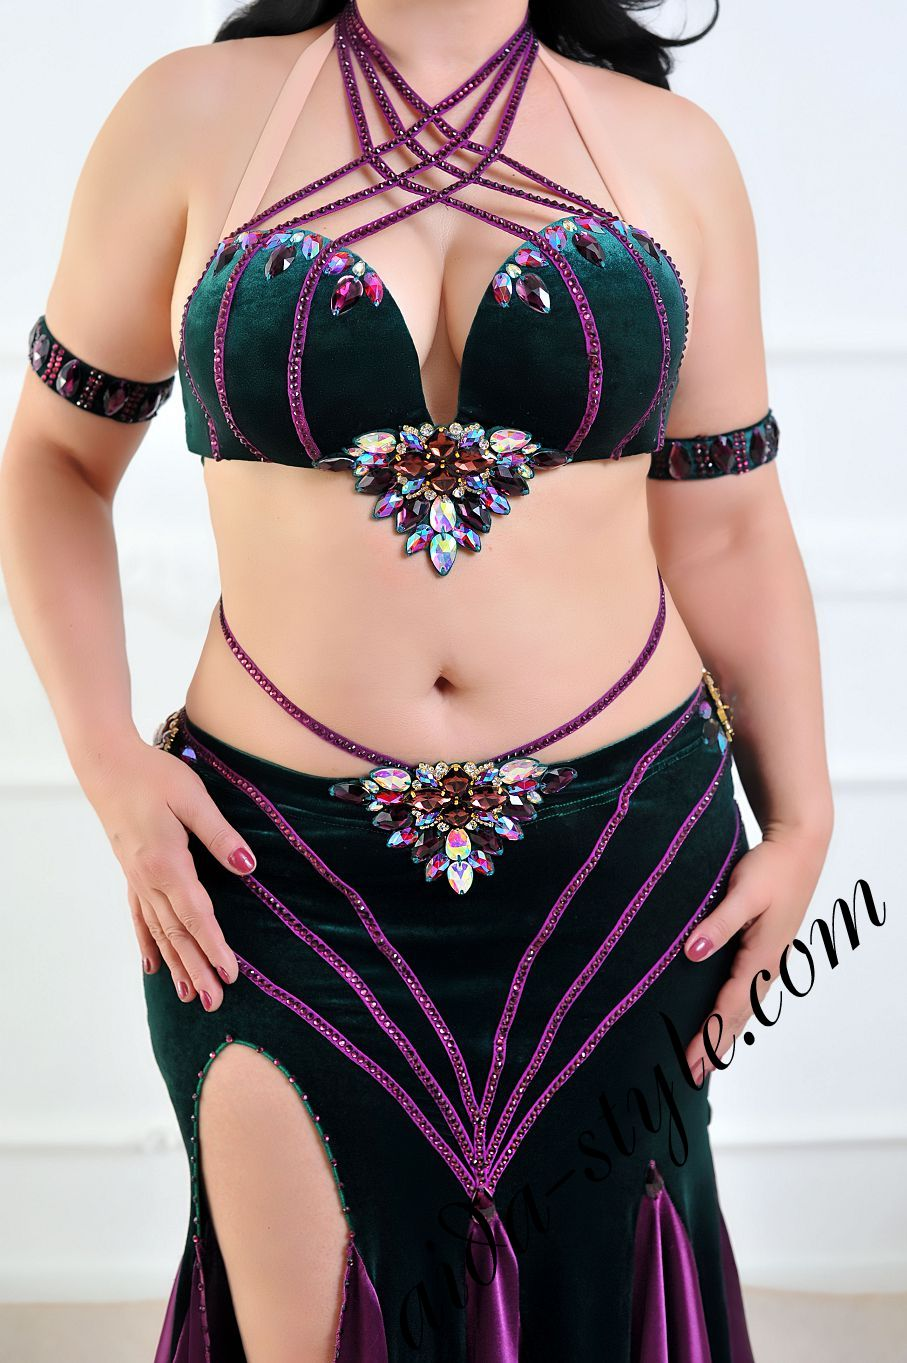 aida style belly dance costume in velvet